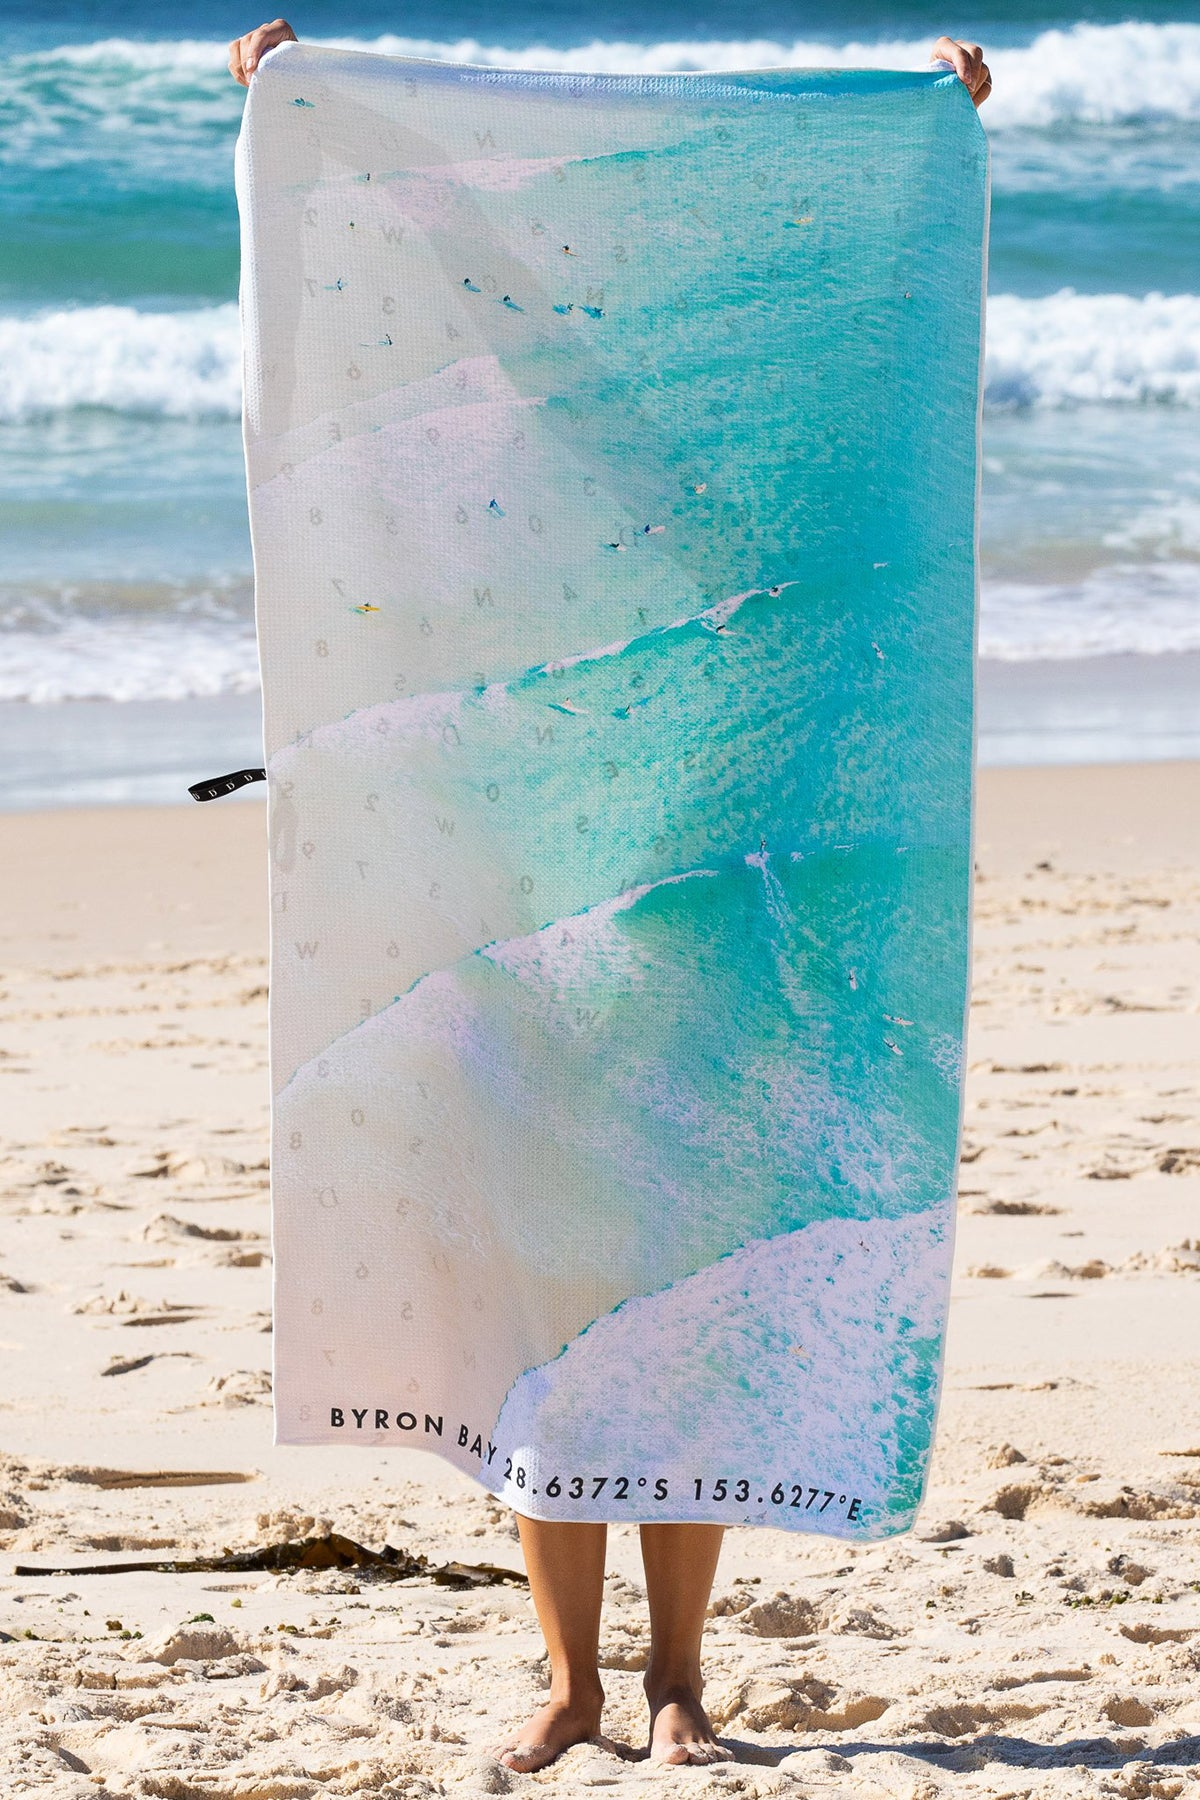 The Byron Lineup Beach Towel travel product recommended by Leanne Thongthip on Lifney.